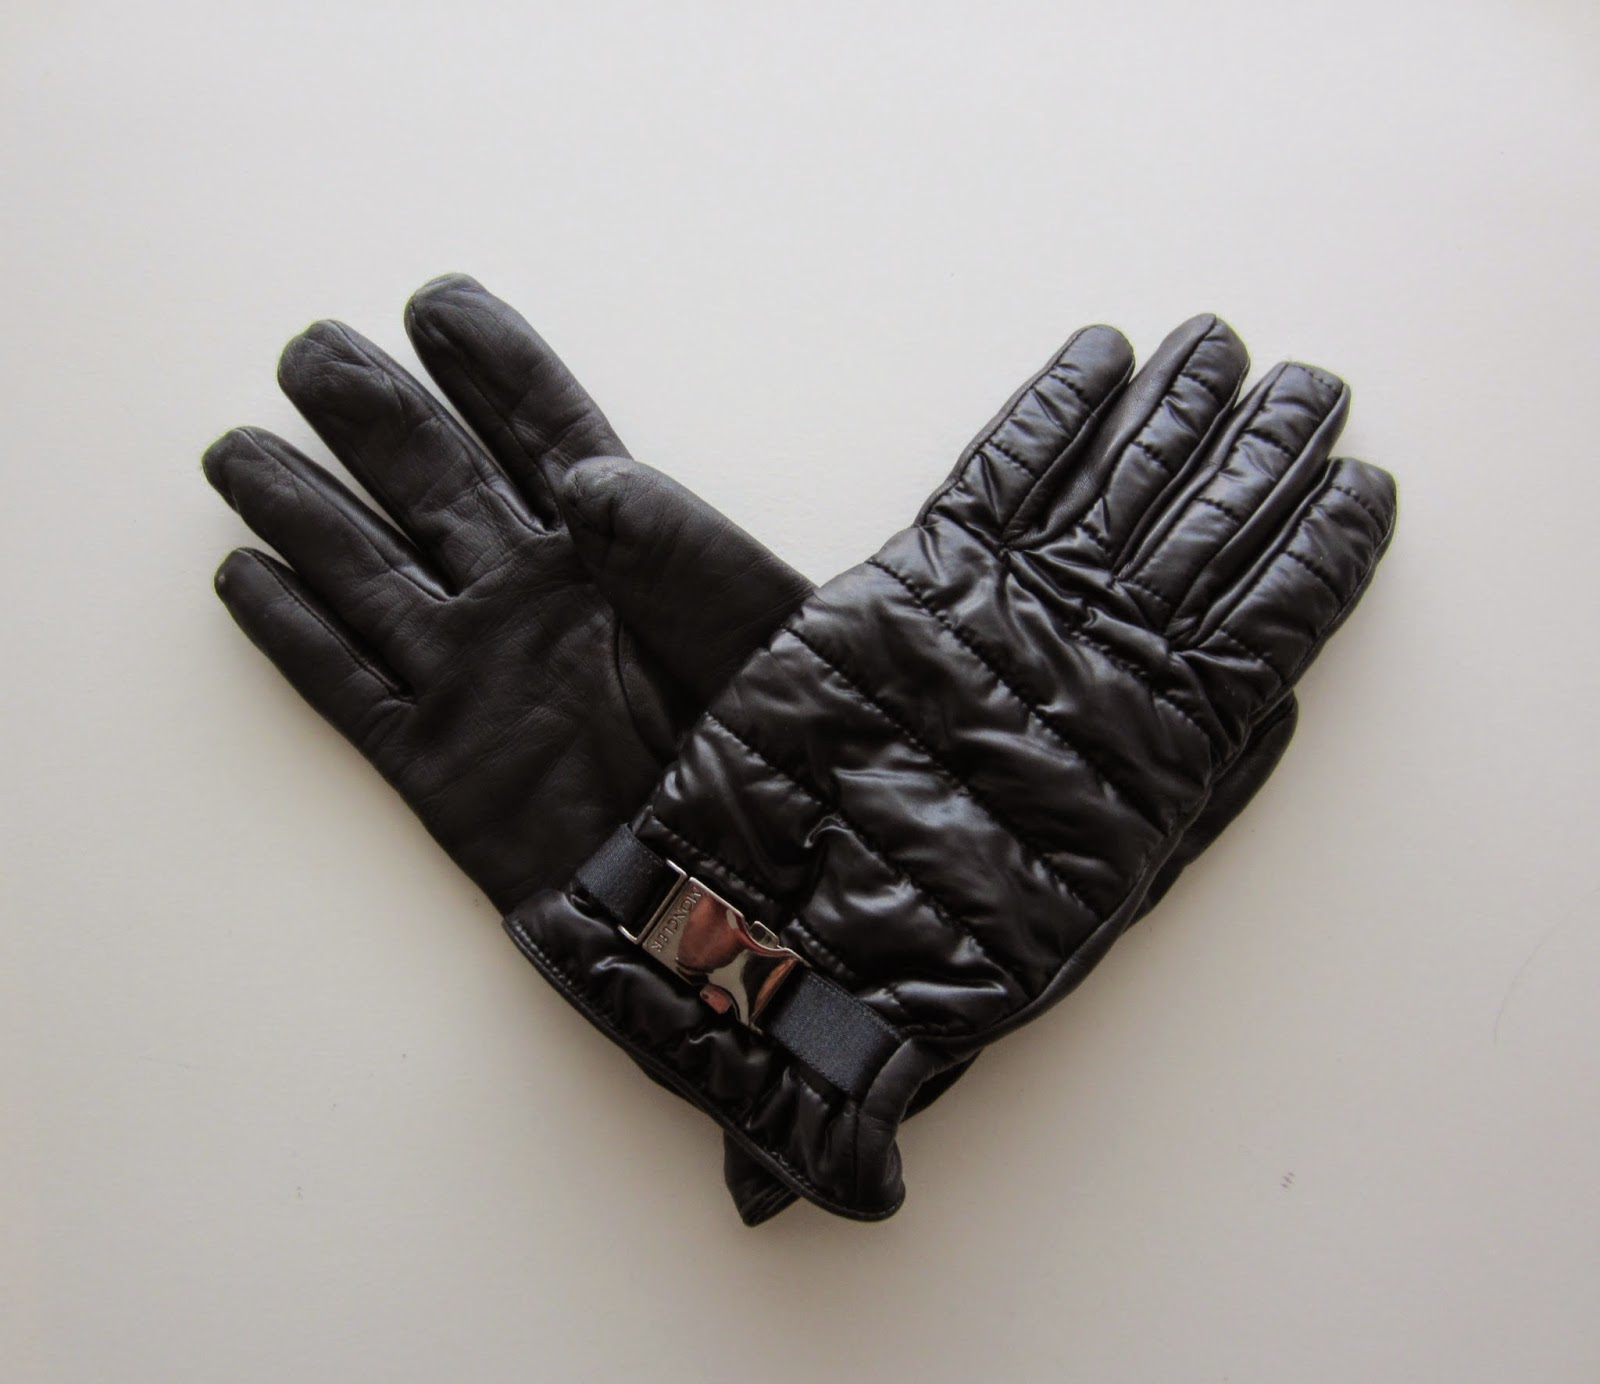 Moncler Black Leather & Quilted Gloves